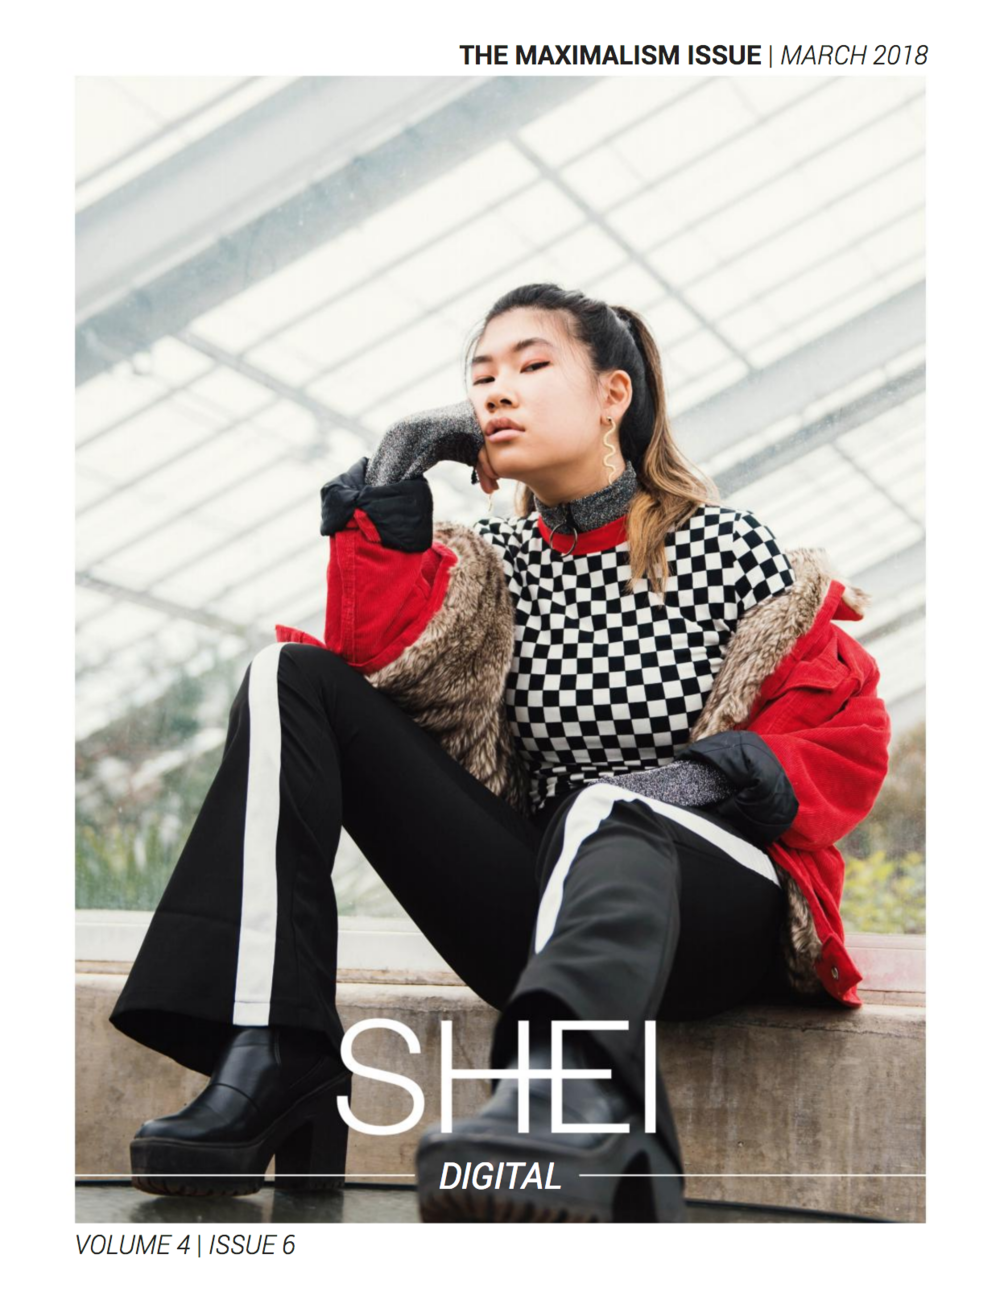 SHEI Digital // Vol. 4 Iss. 6